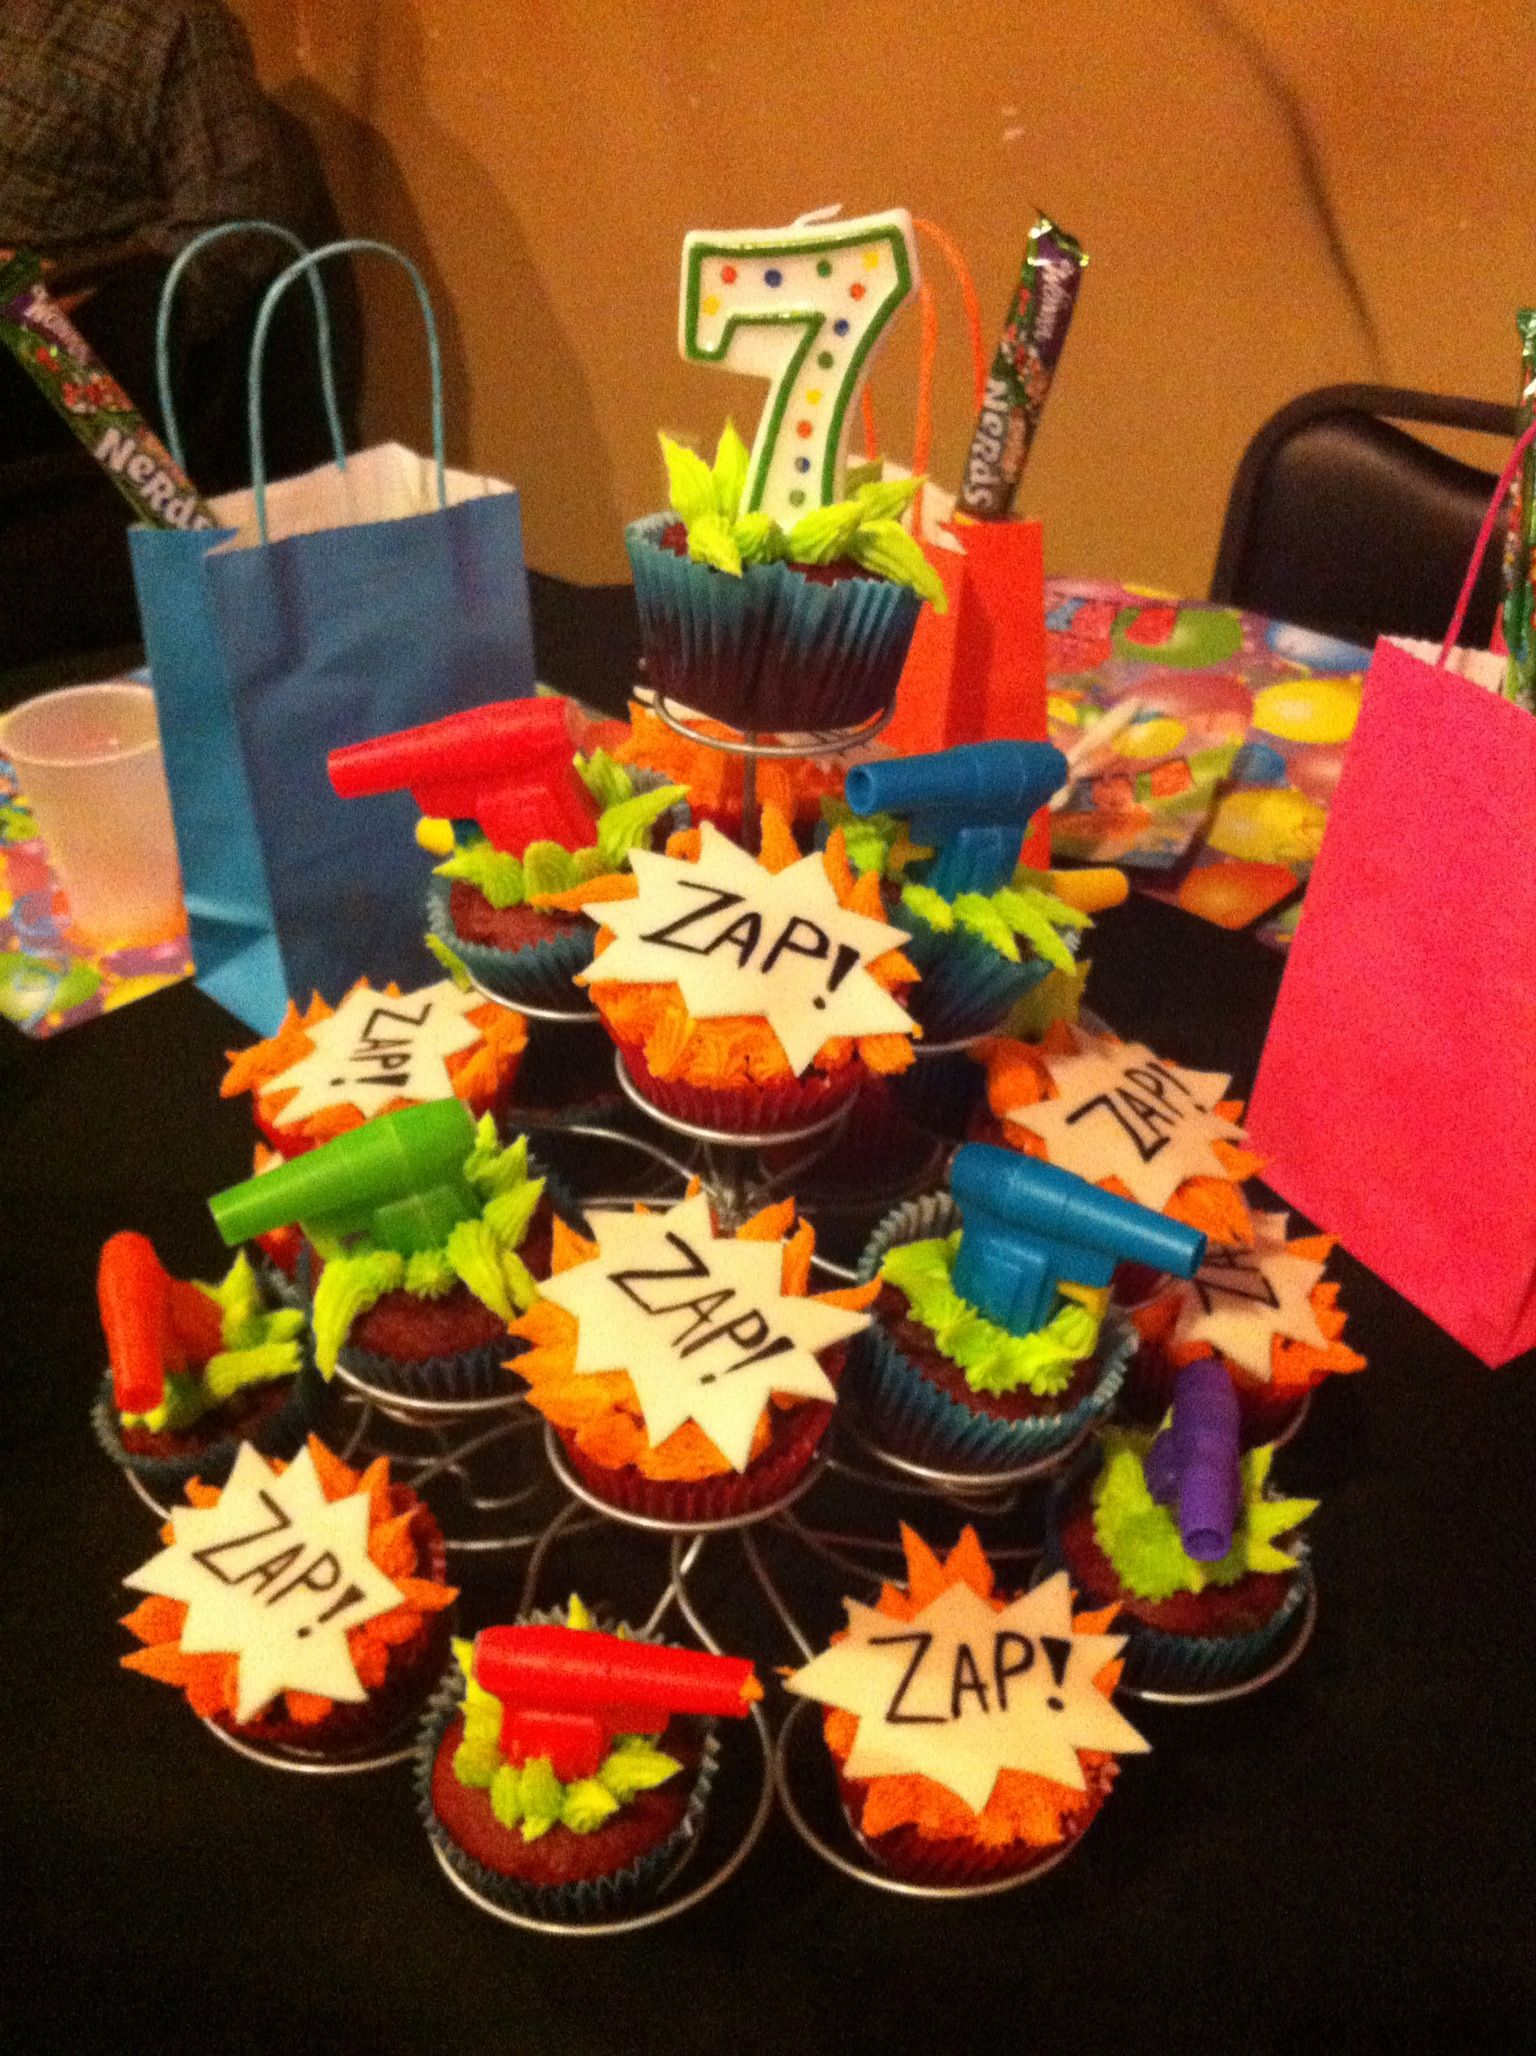 Laser Tag Cupcakes